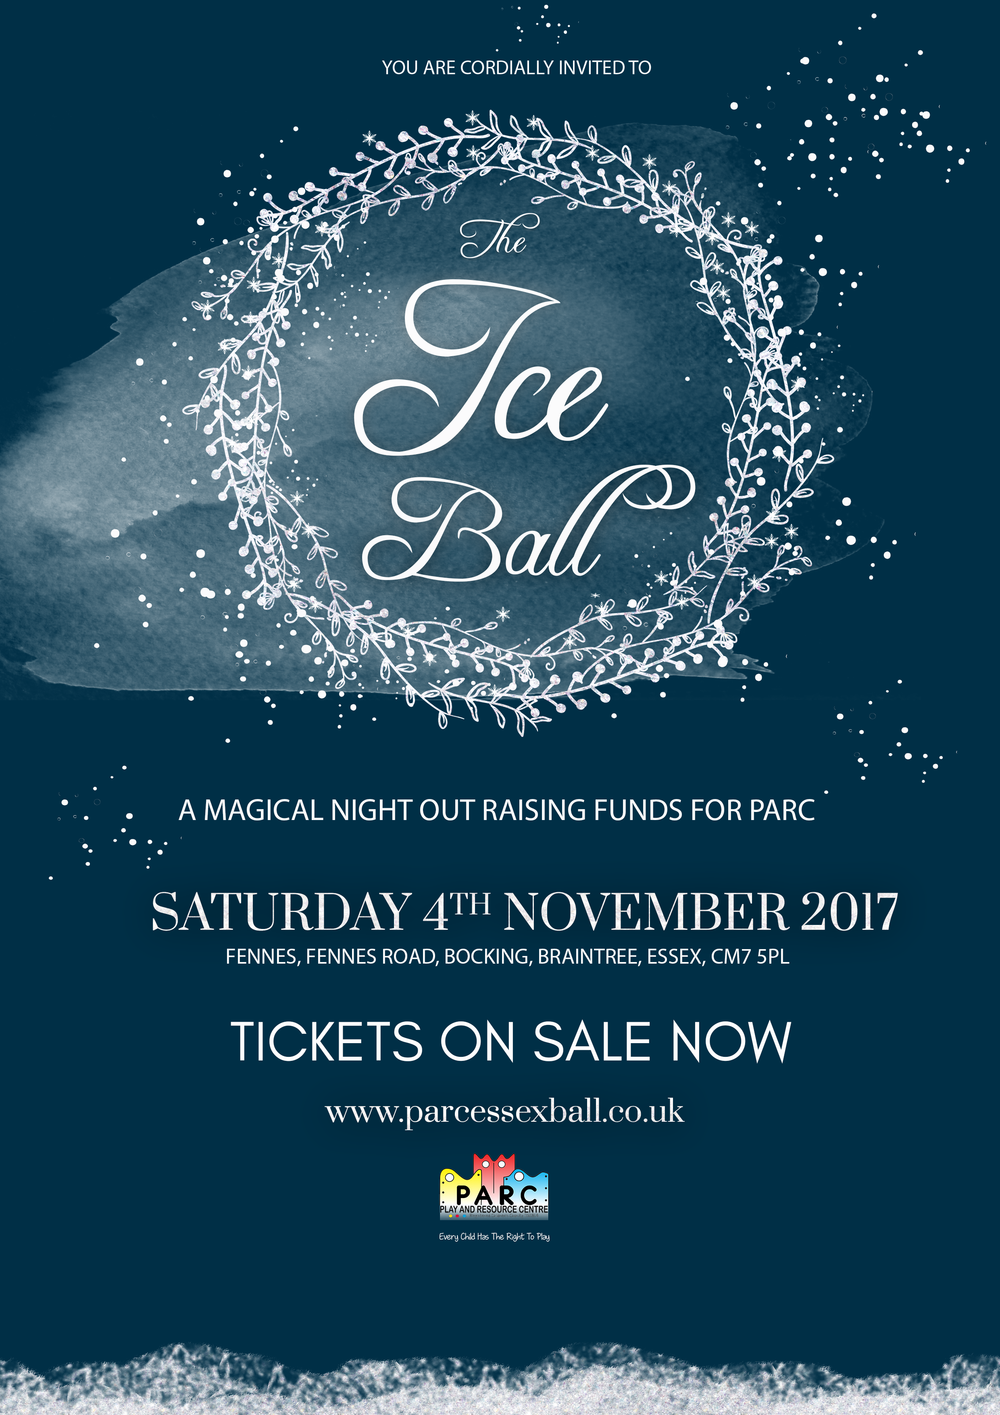 Ice-Ball-2017-Poster-with-details.png